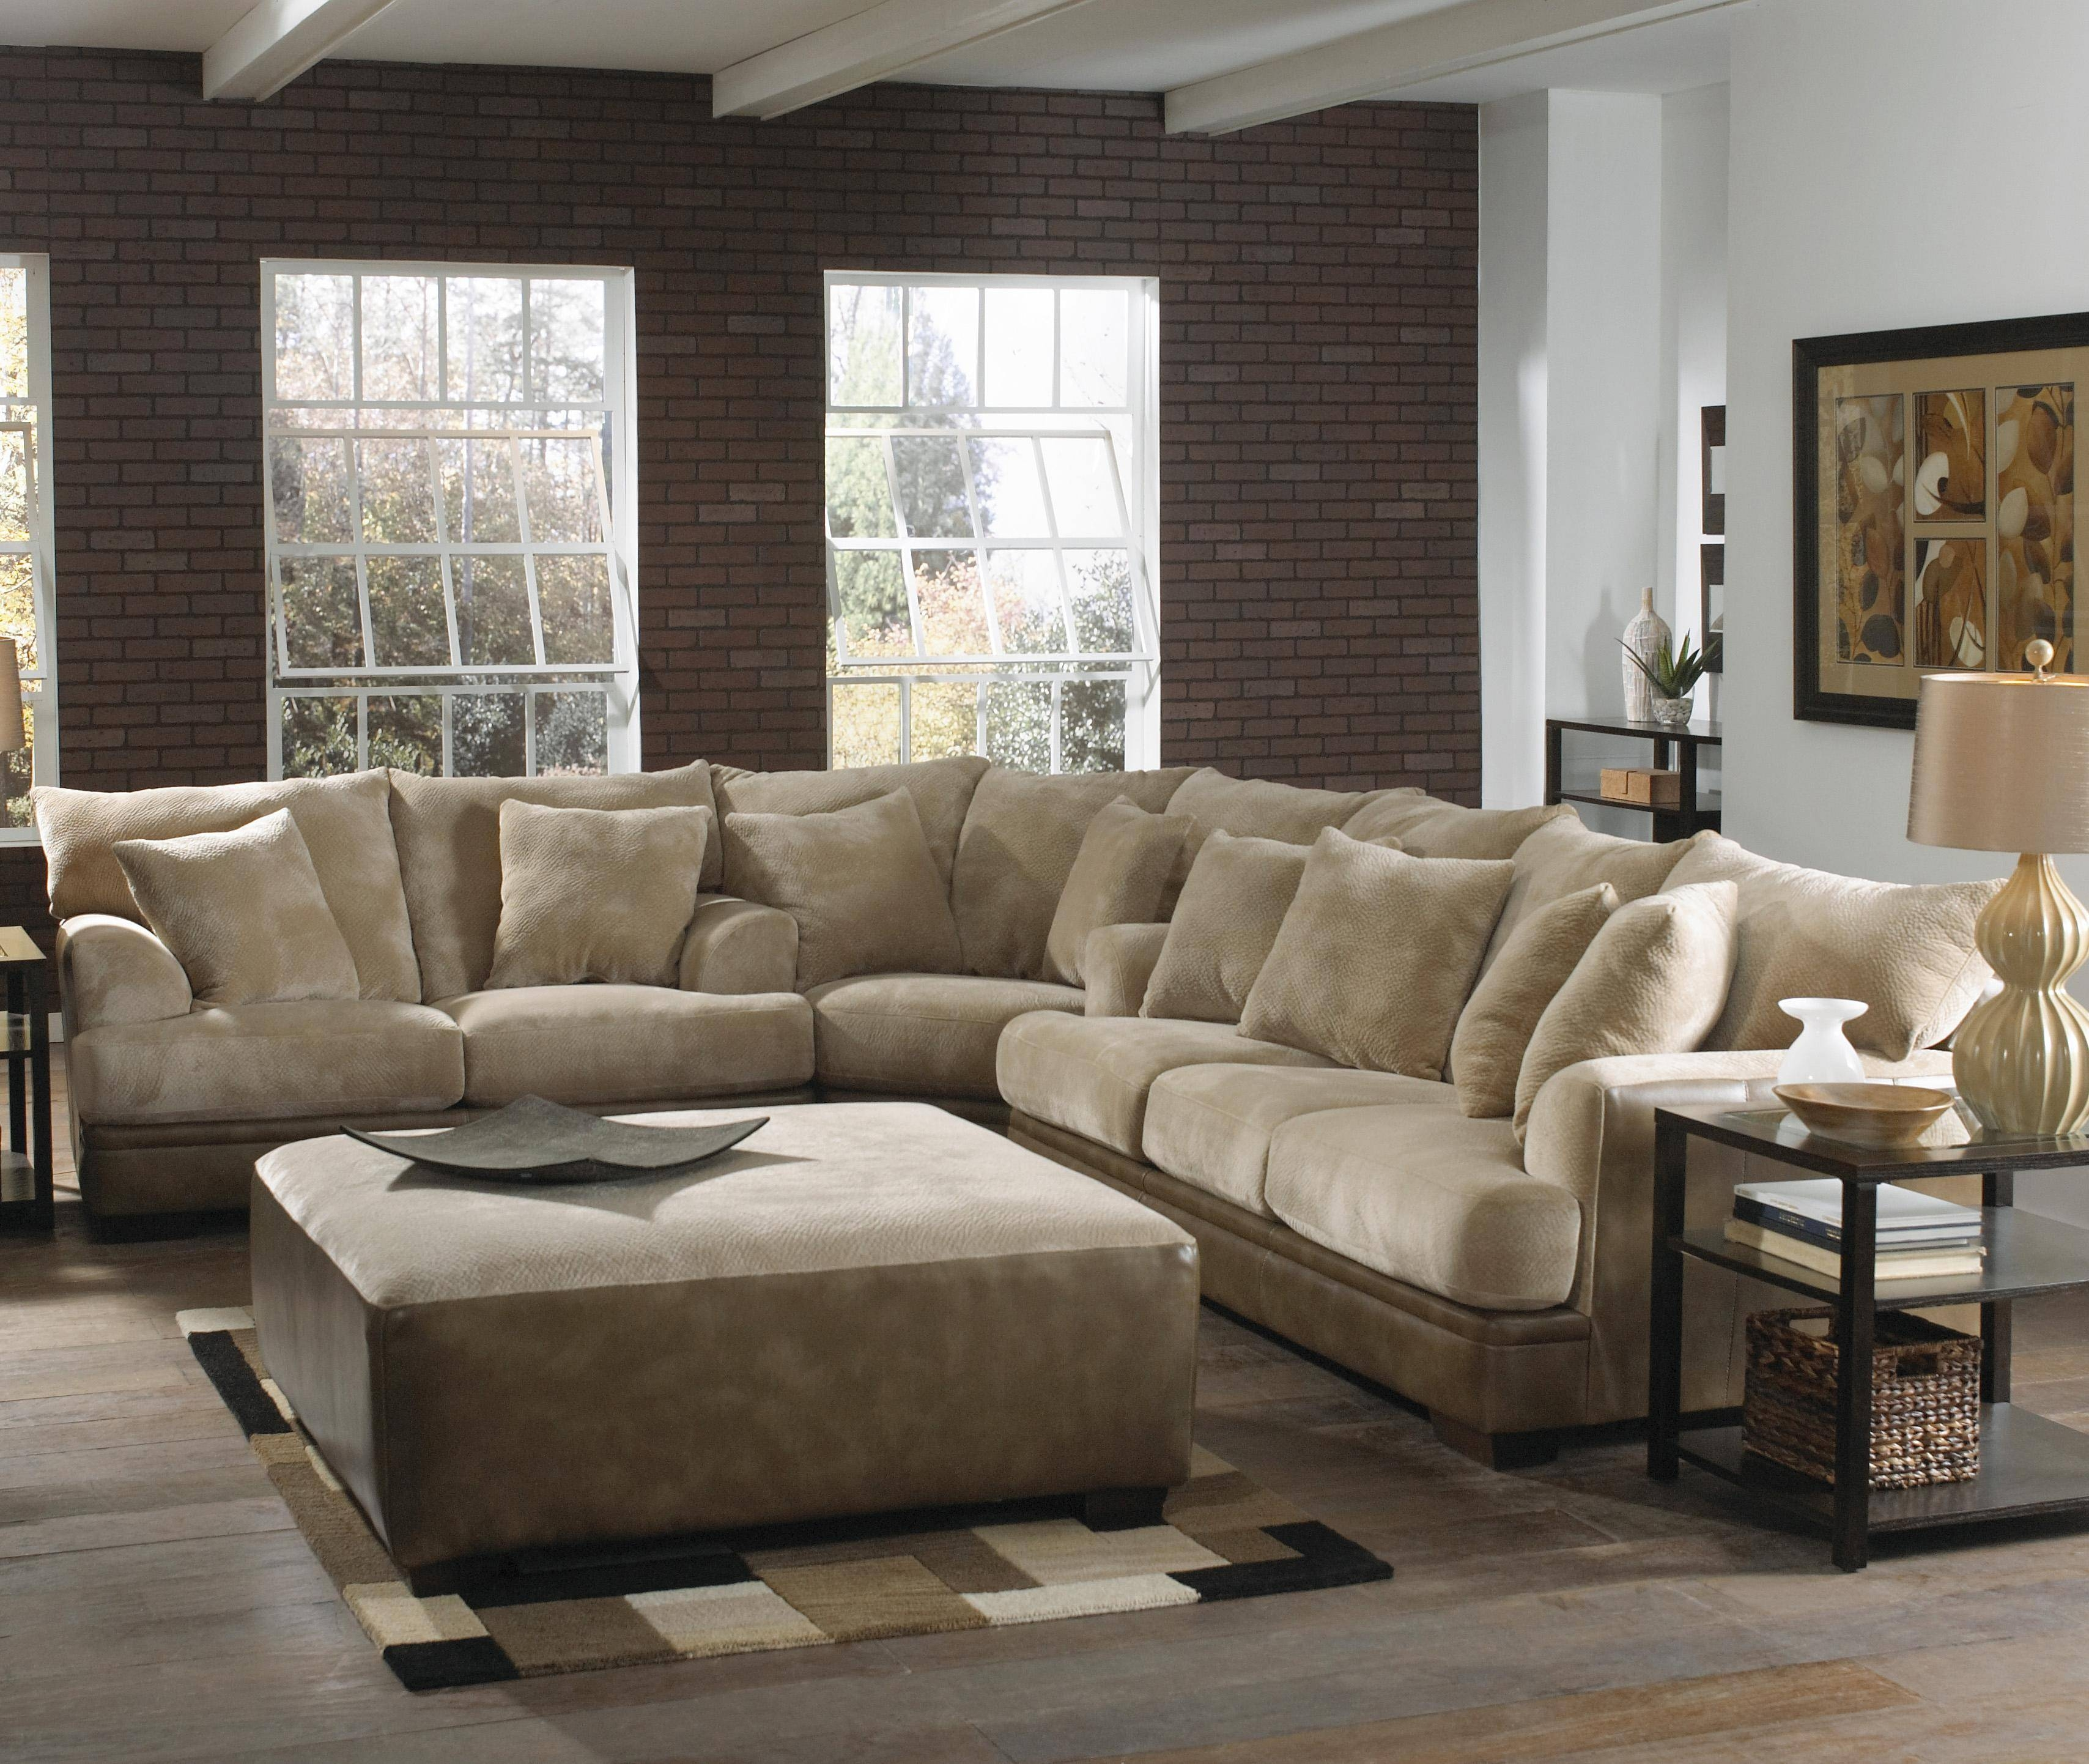 Large Sofas 30 Best Collection Of Extra Large Sectional Sofas